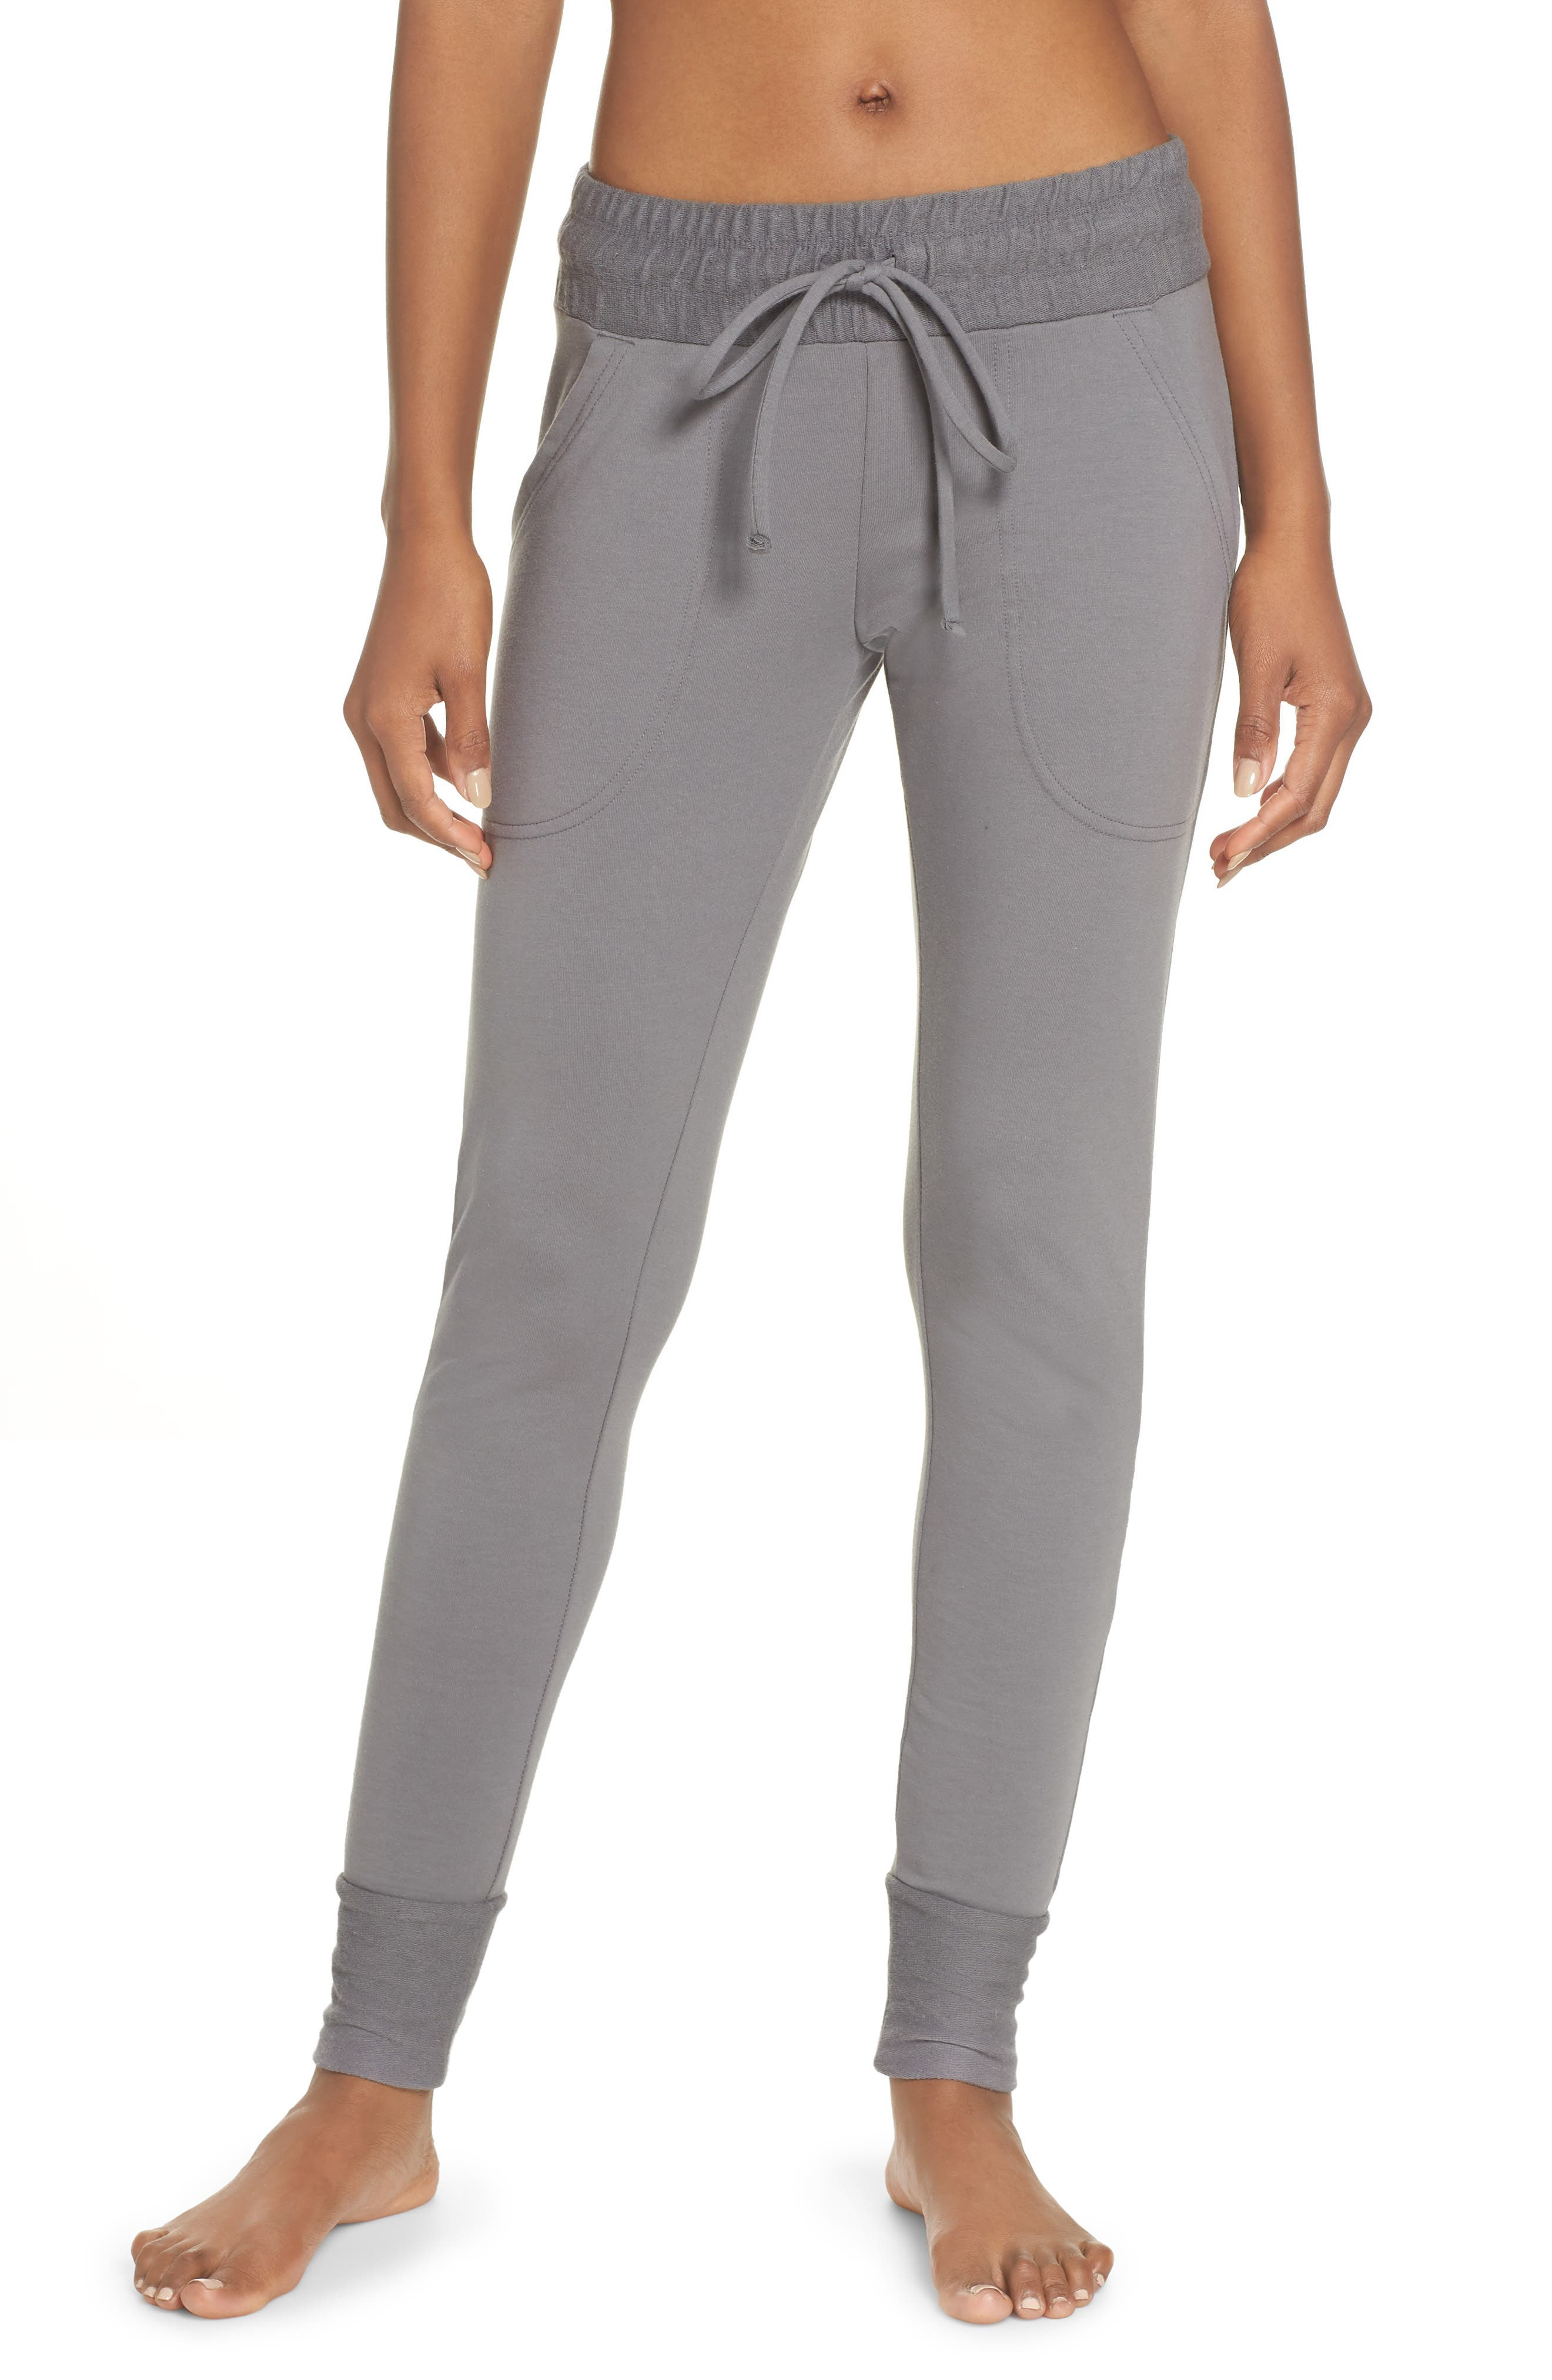 Sunny Skinny Sweatpants,                             Main thumbnail 1, color,                             DARK GREY